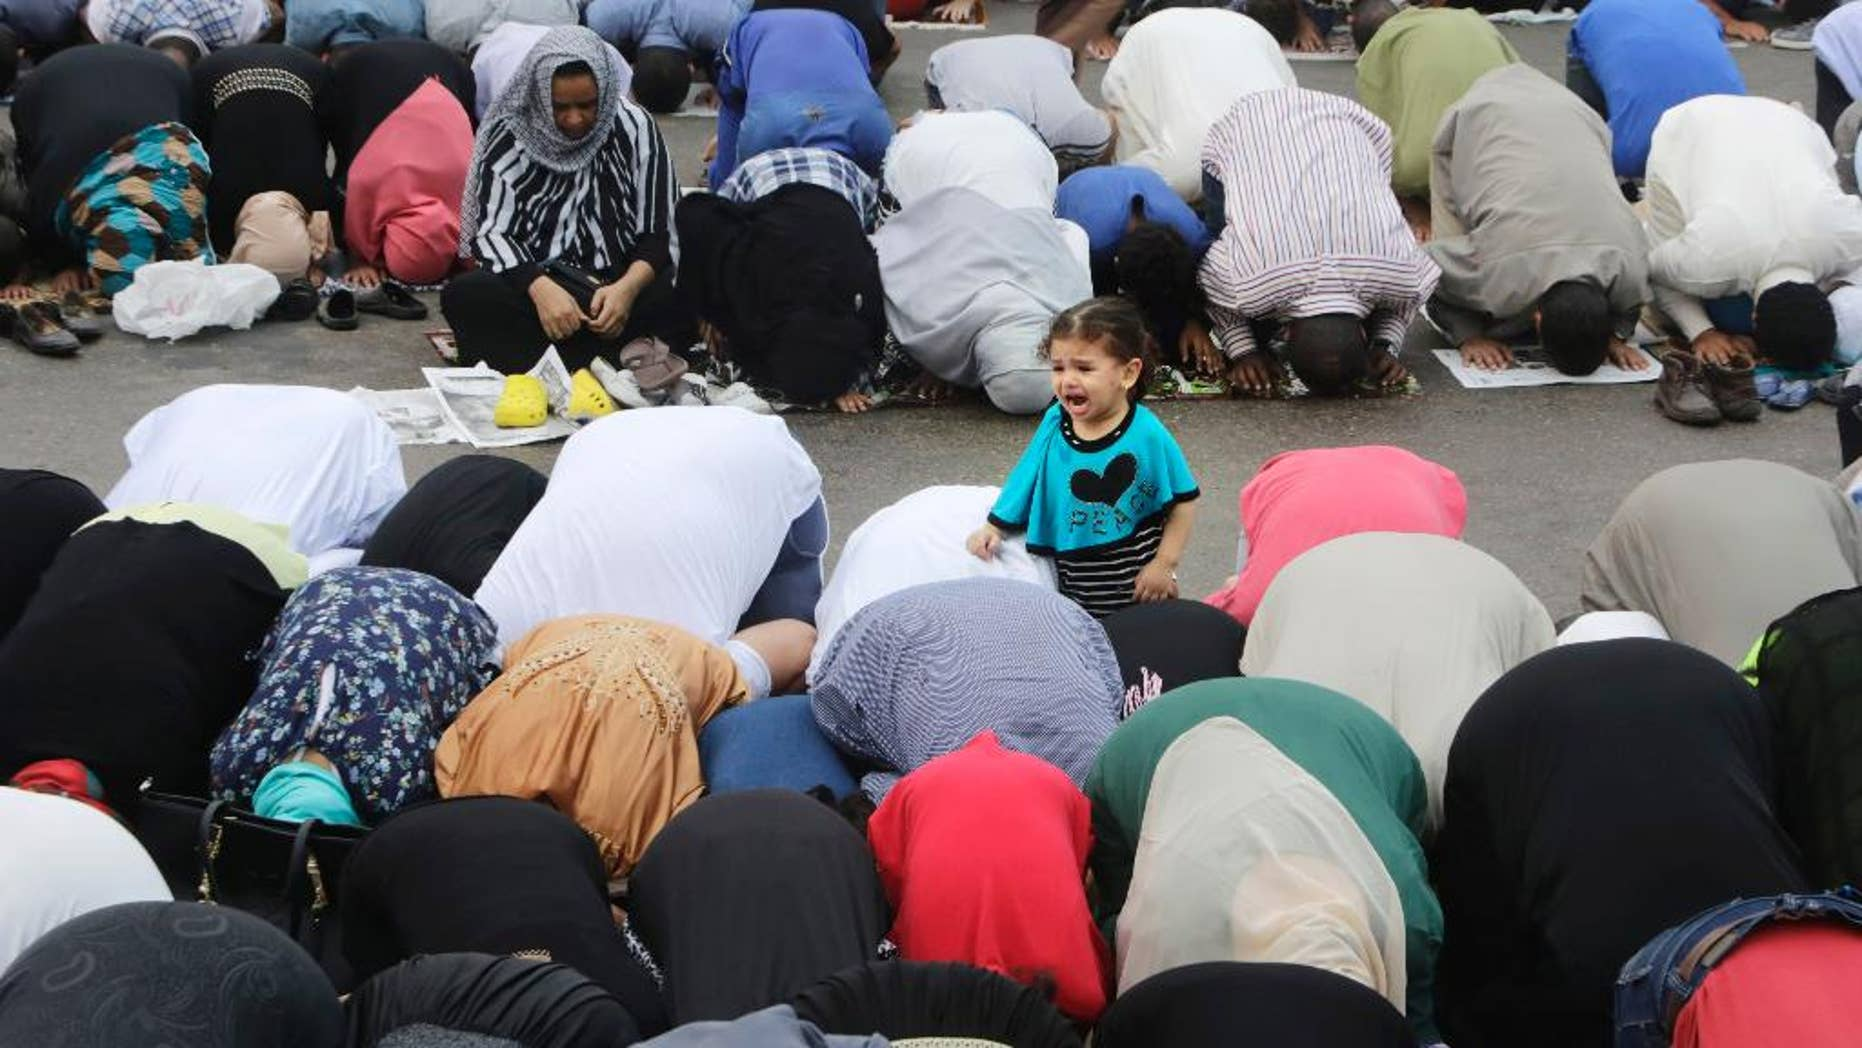 An Egyptian girl cries as her mother joins others offering an Eid al-Fitr prayer, marking the end of the Muslim holy month of Ramadan in Cairo, Egypt, Friday, July 17, 2015. (AP Photo/Amr Nabil)